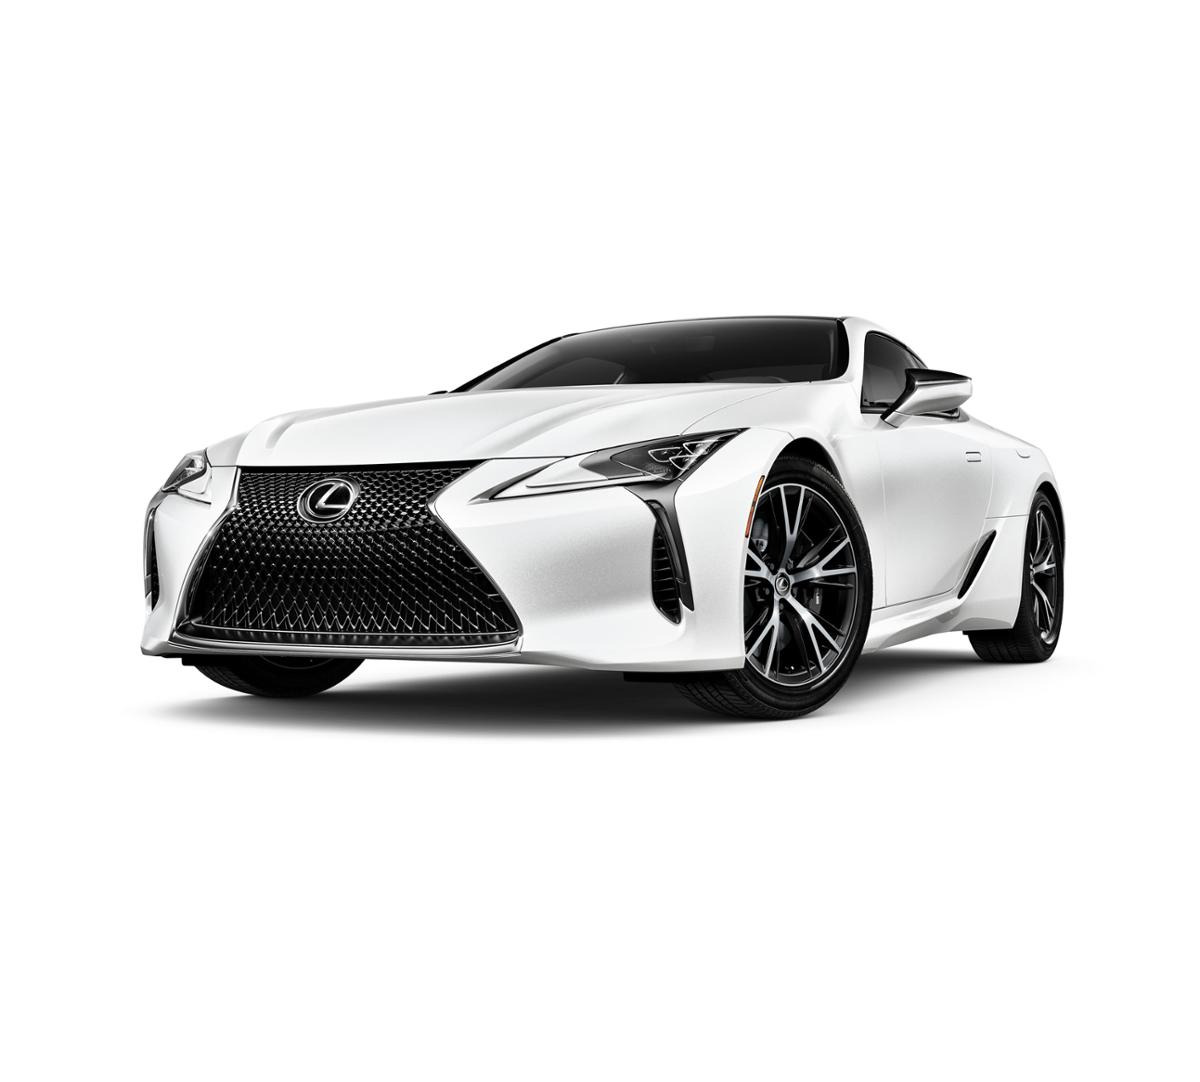 2018 Lexus LC 500 Vehicle Photo in Santa Barbara, CA 93105